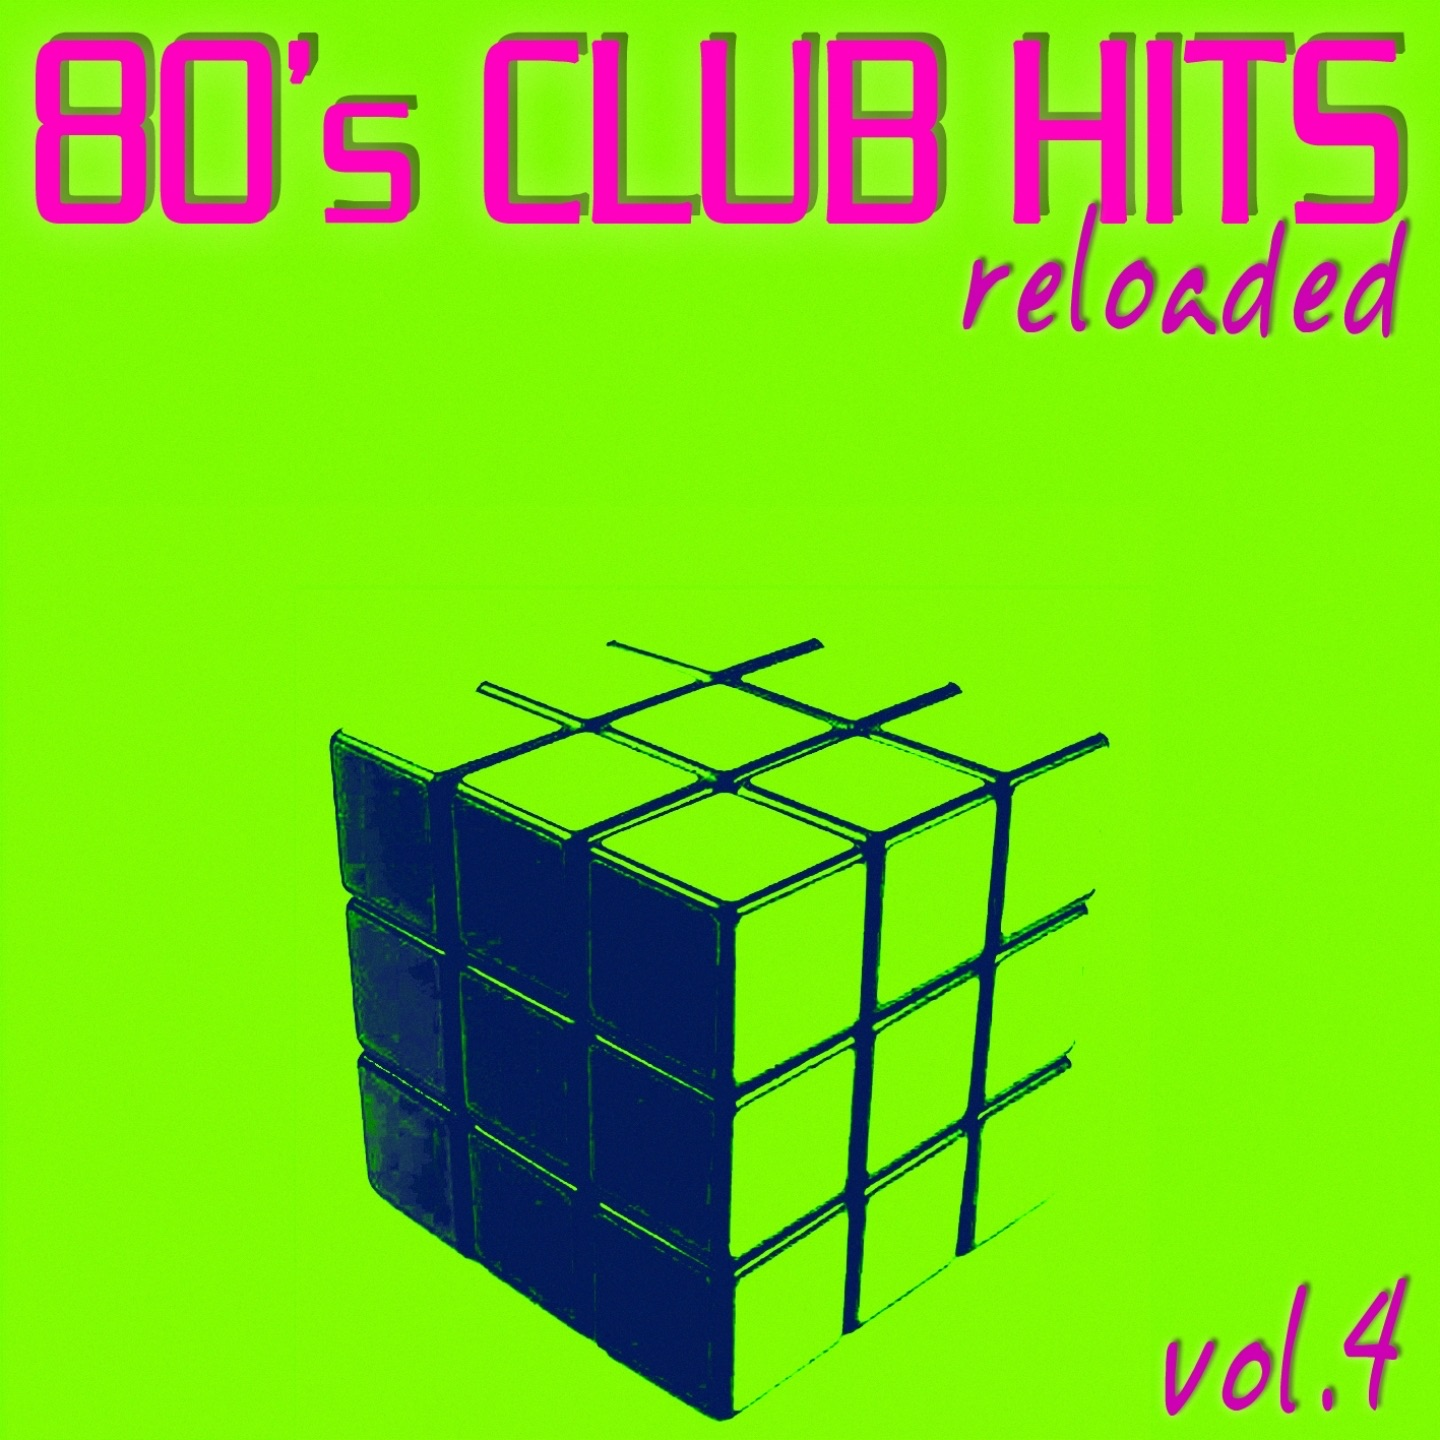 80 39 s club hits reloaded vol 4 best of club dance house for 80s house music mix